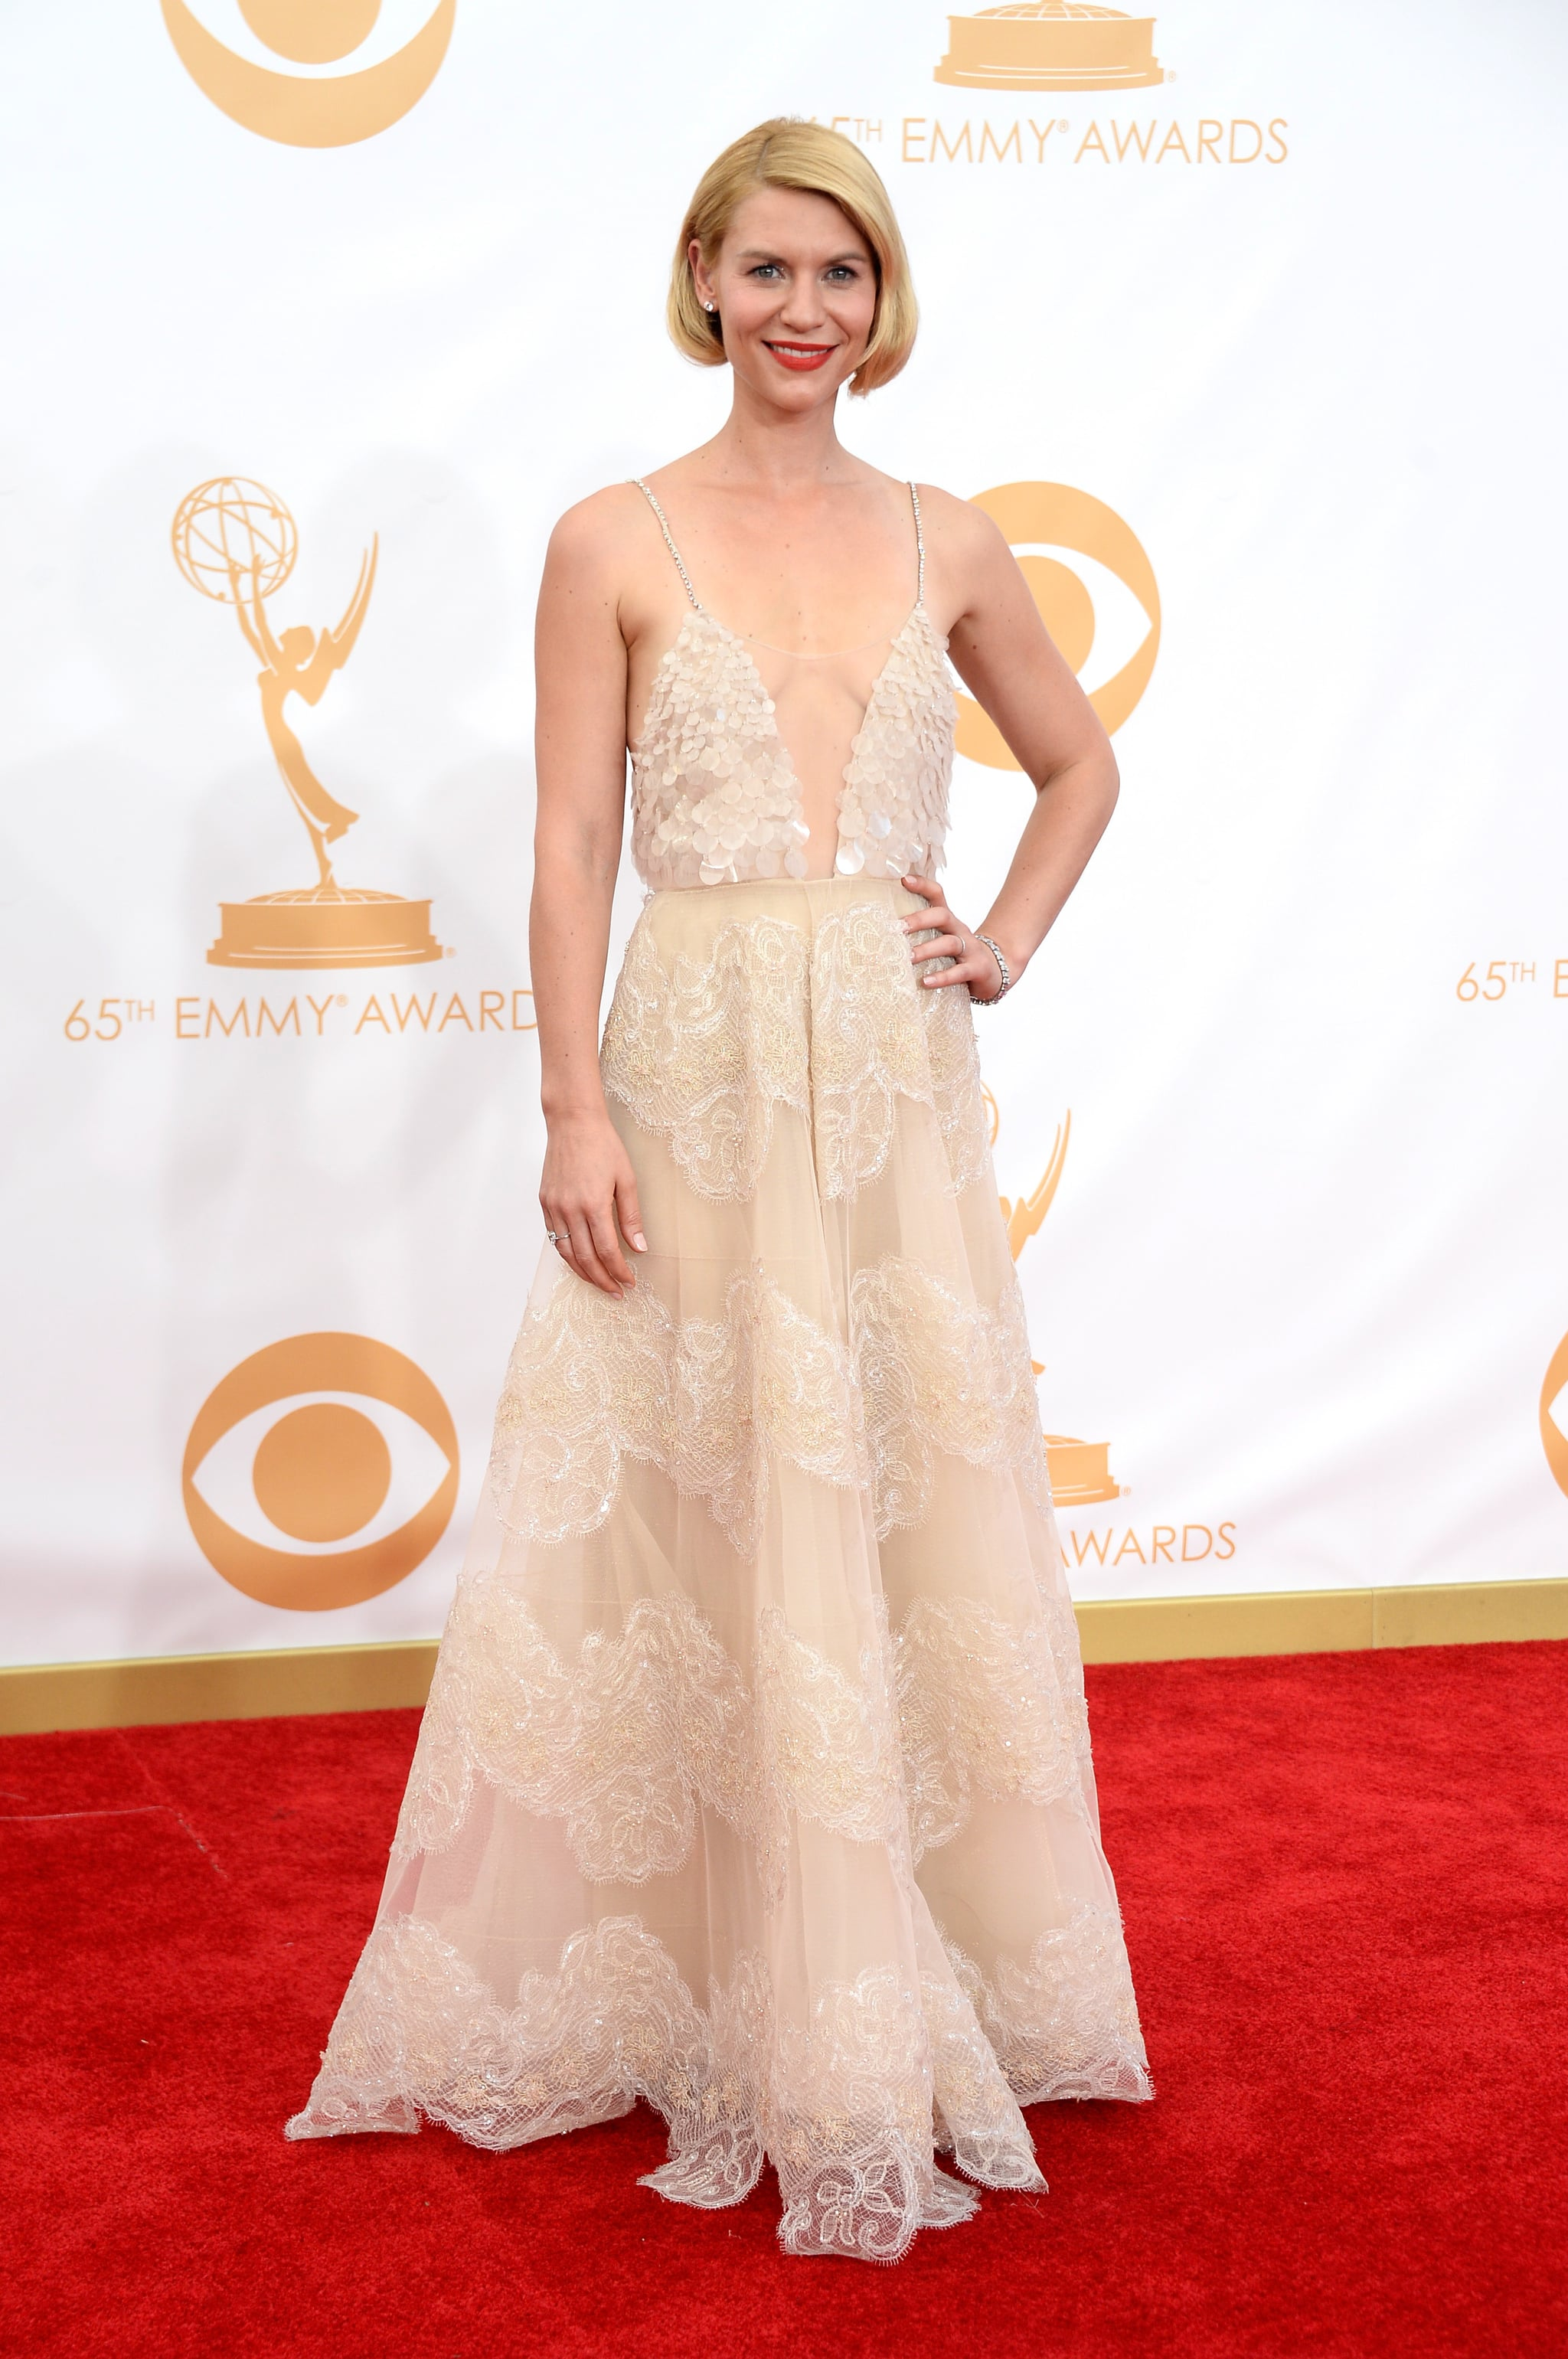 Claire Danes attended the 2013 Emmys.